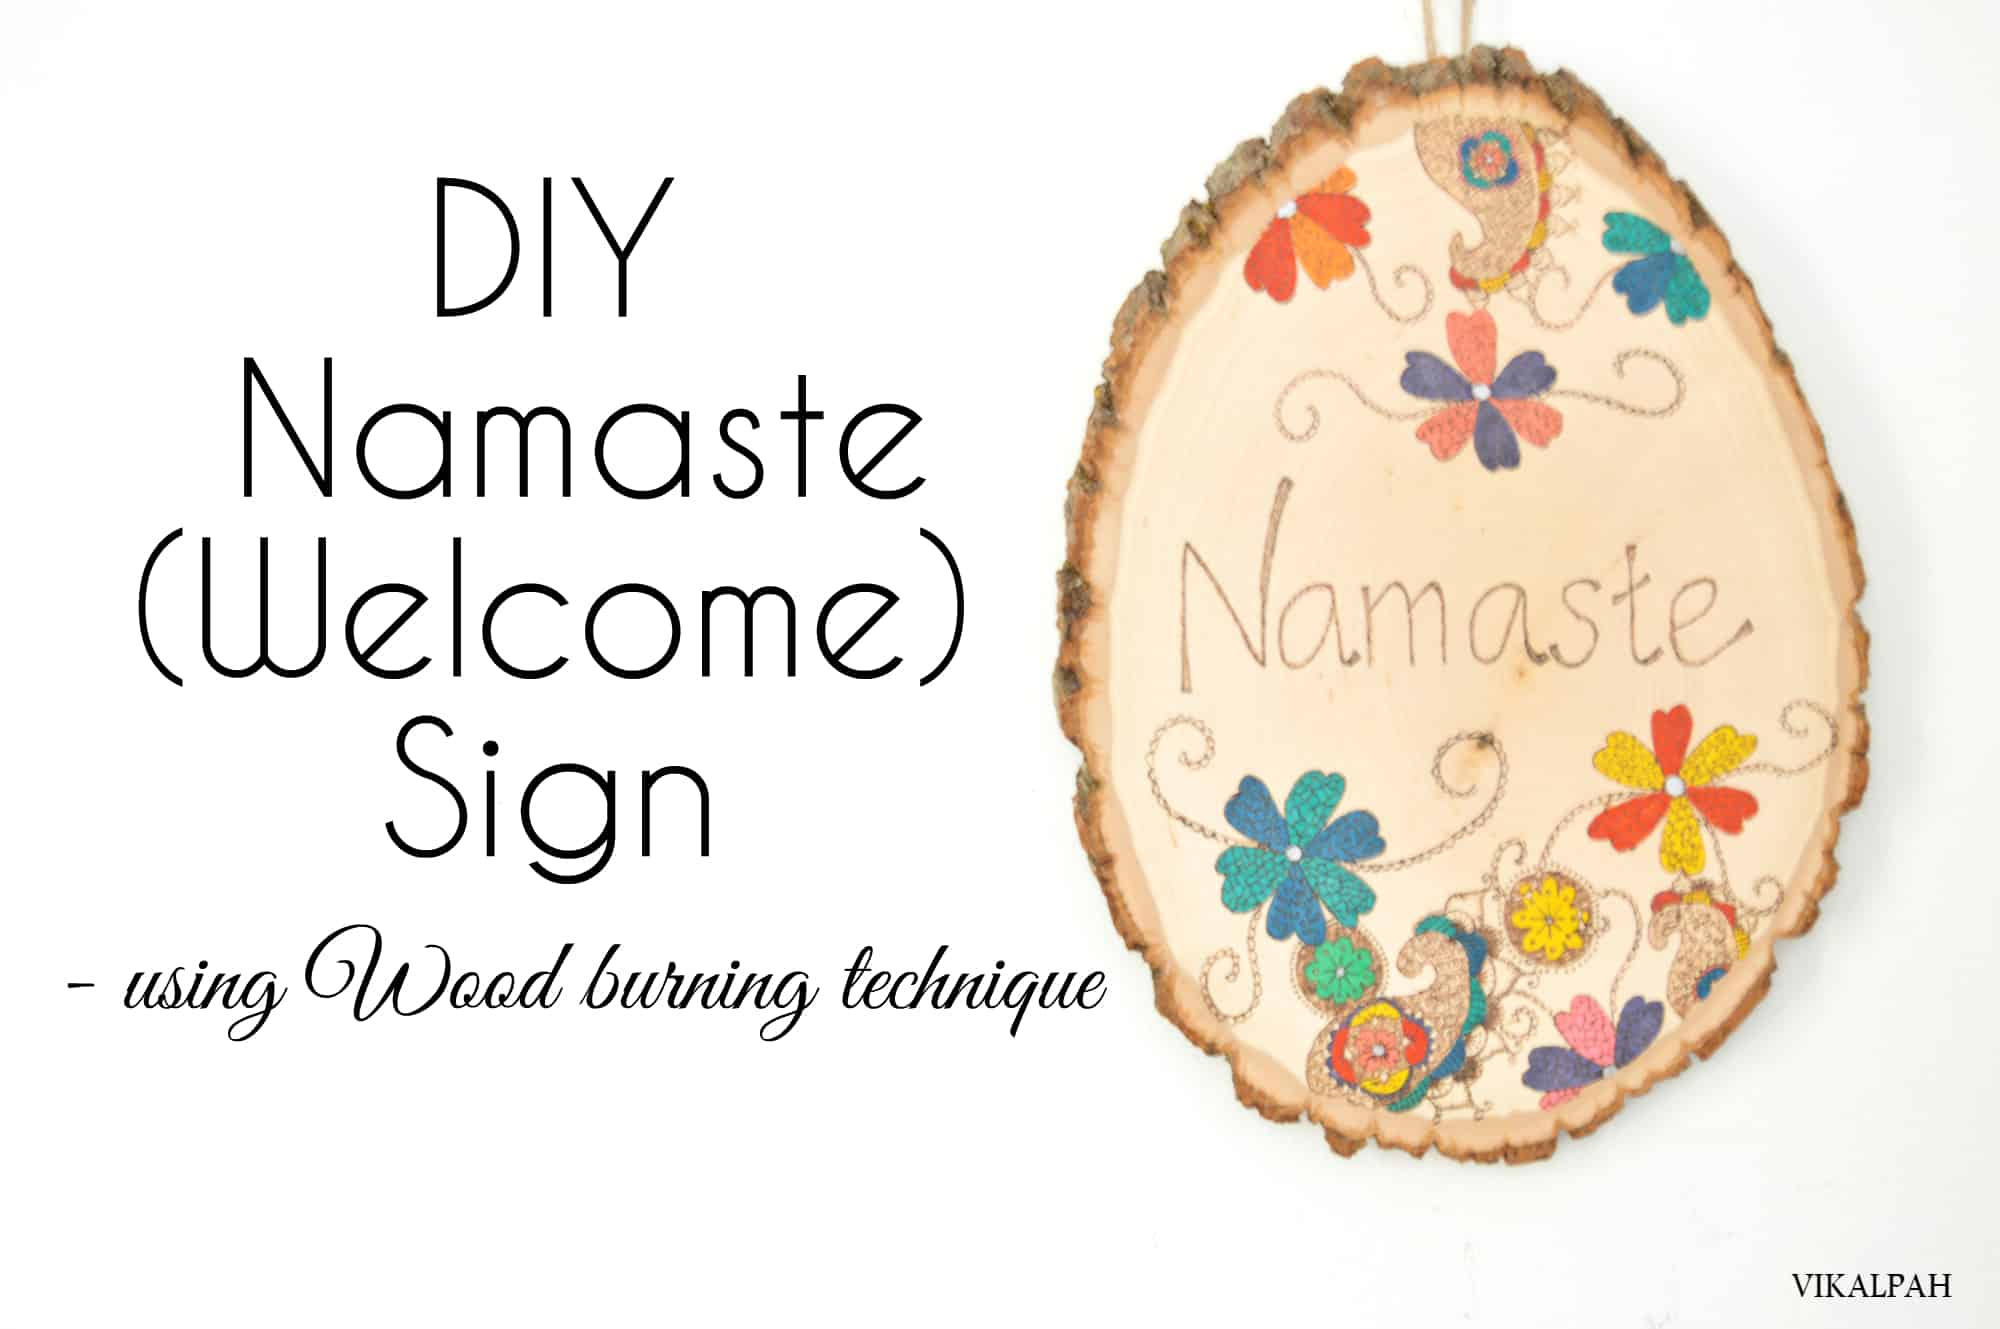 Wooden section namaste welcome sign